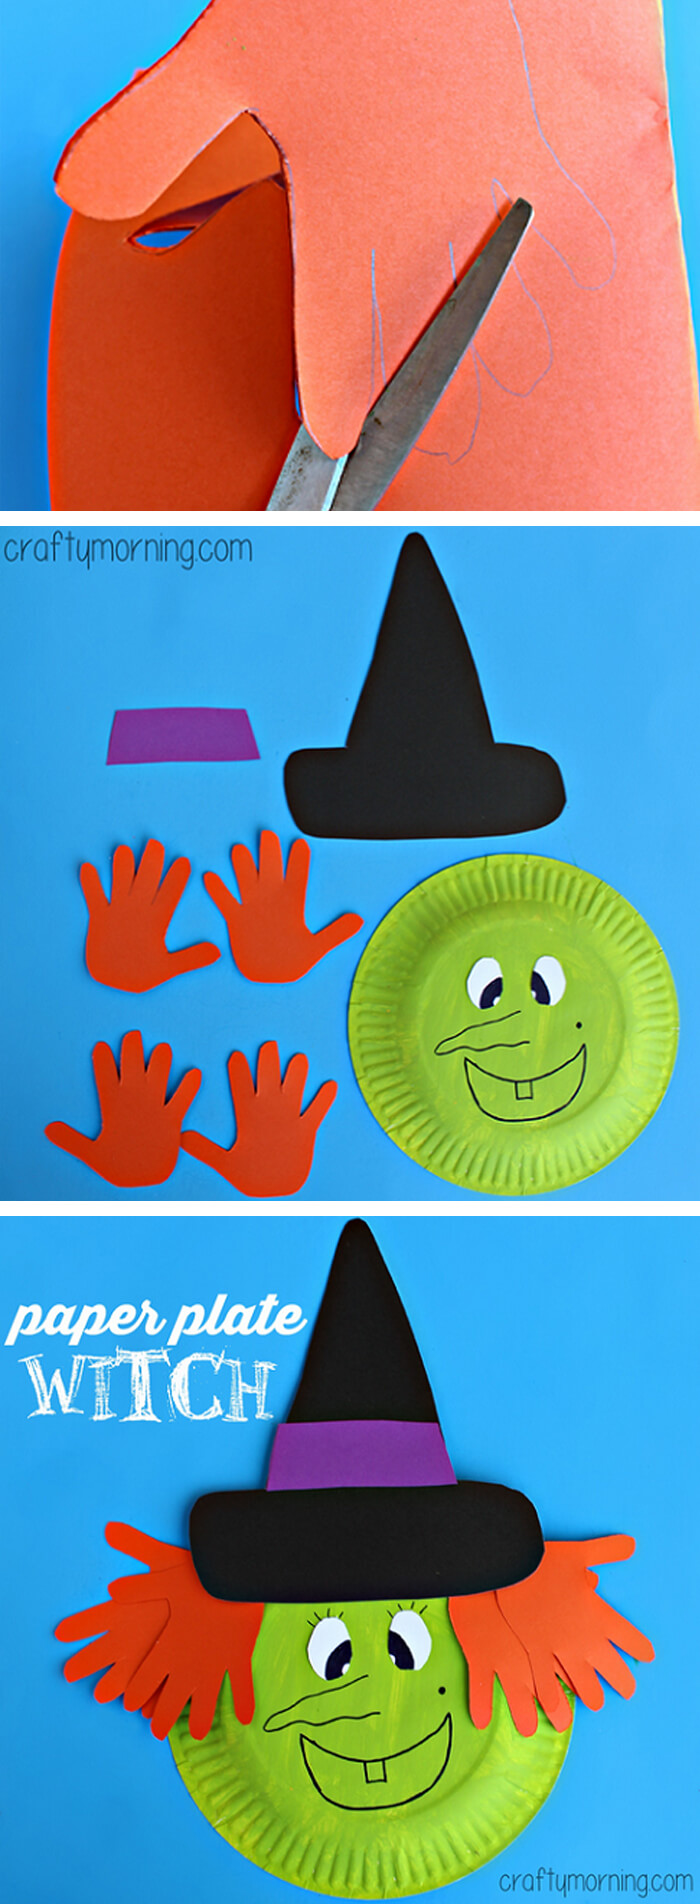 Recyle Halloween Decorations | How to Have a Green Halloween: Ideas to Make This Halloween More Eco-Friendly